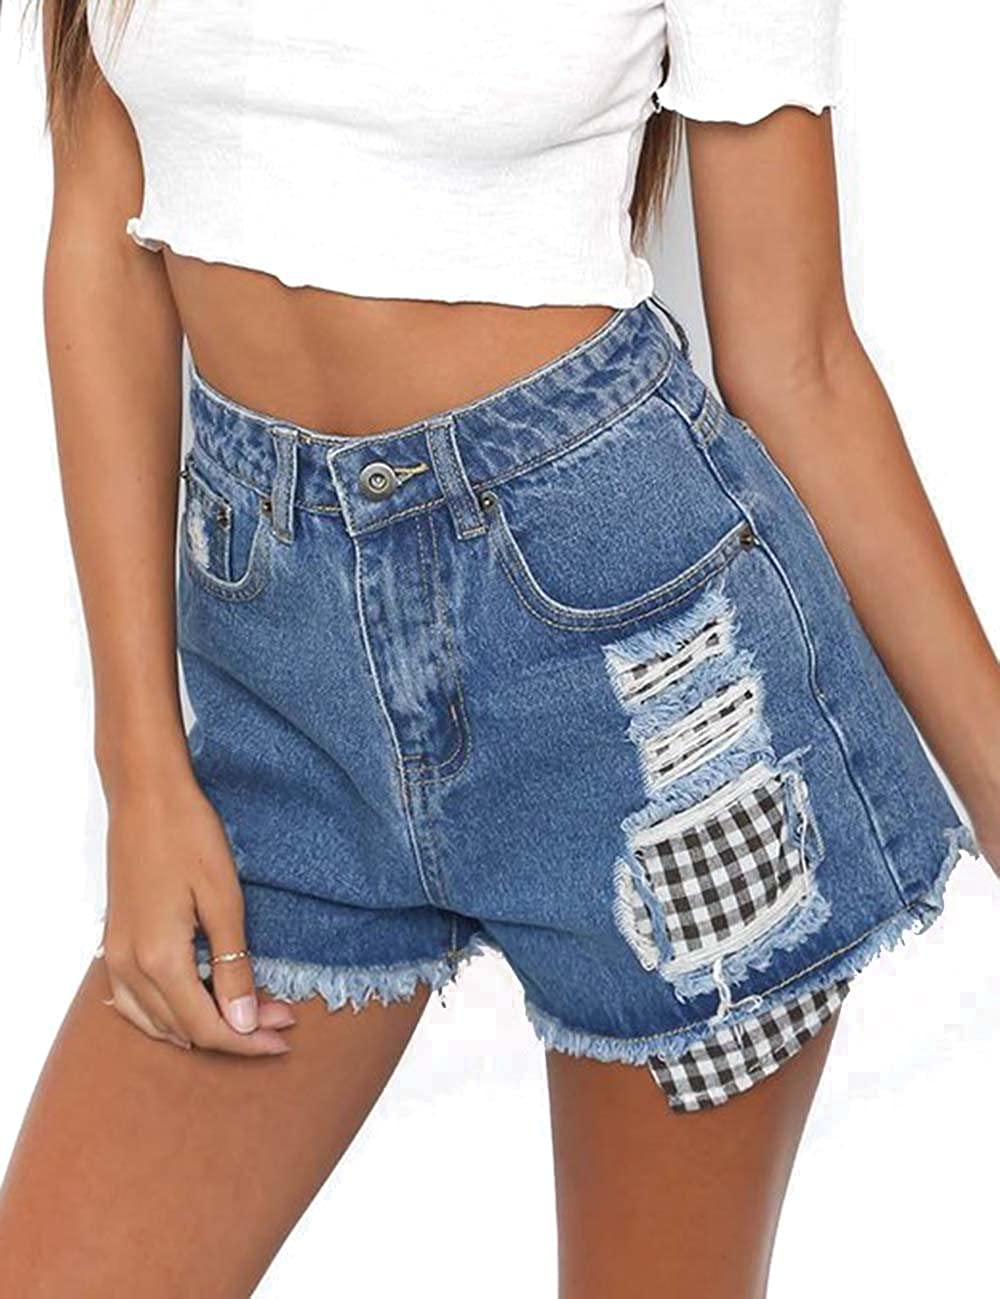 Kleidung & Accessoires Shorts & Bermudas Lee Womens Denim Shorts Us 8 W30 Blue Cotton 100% Garantie